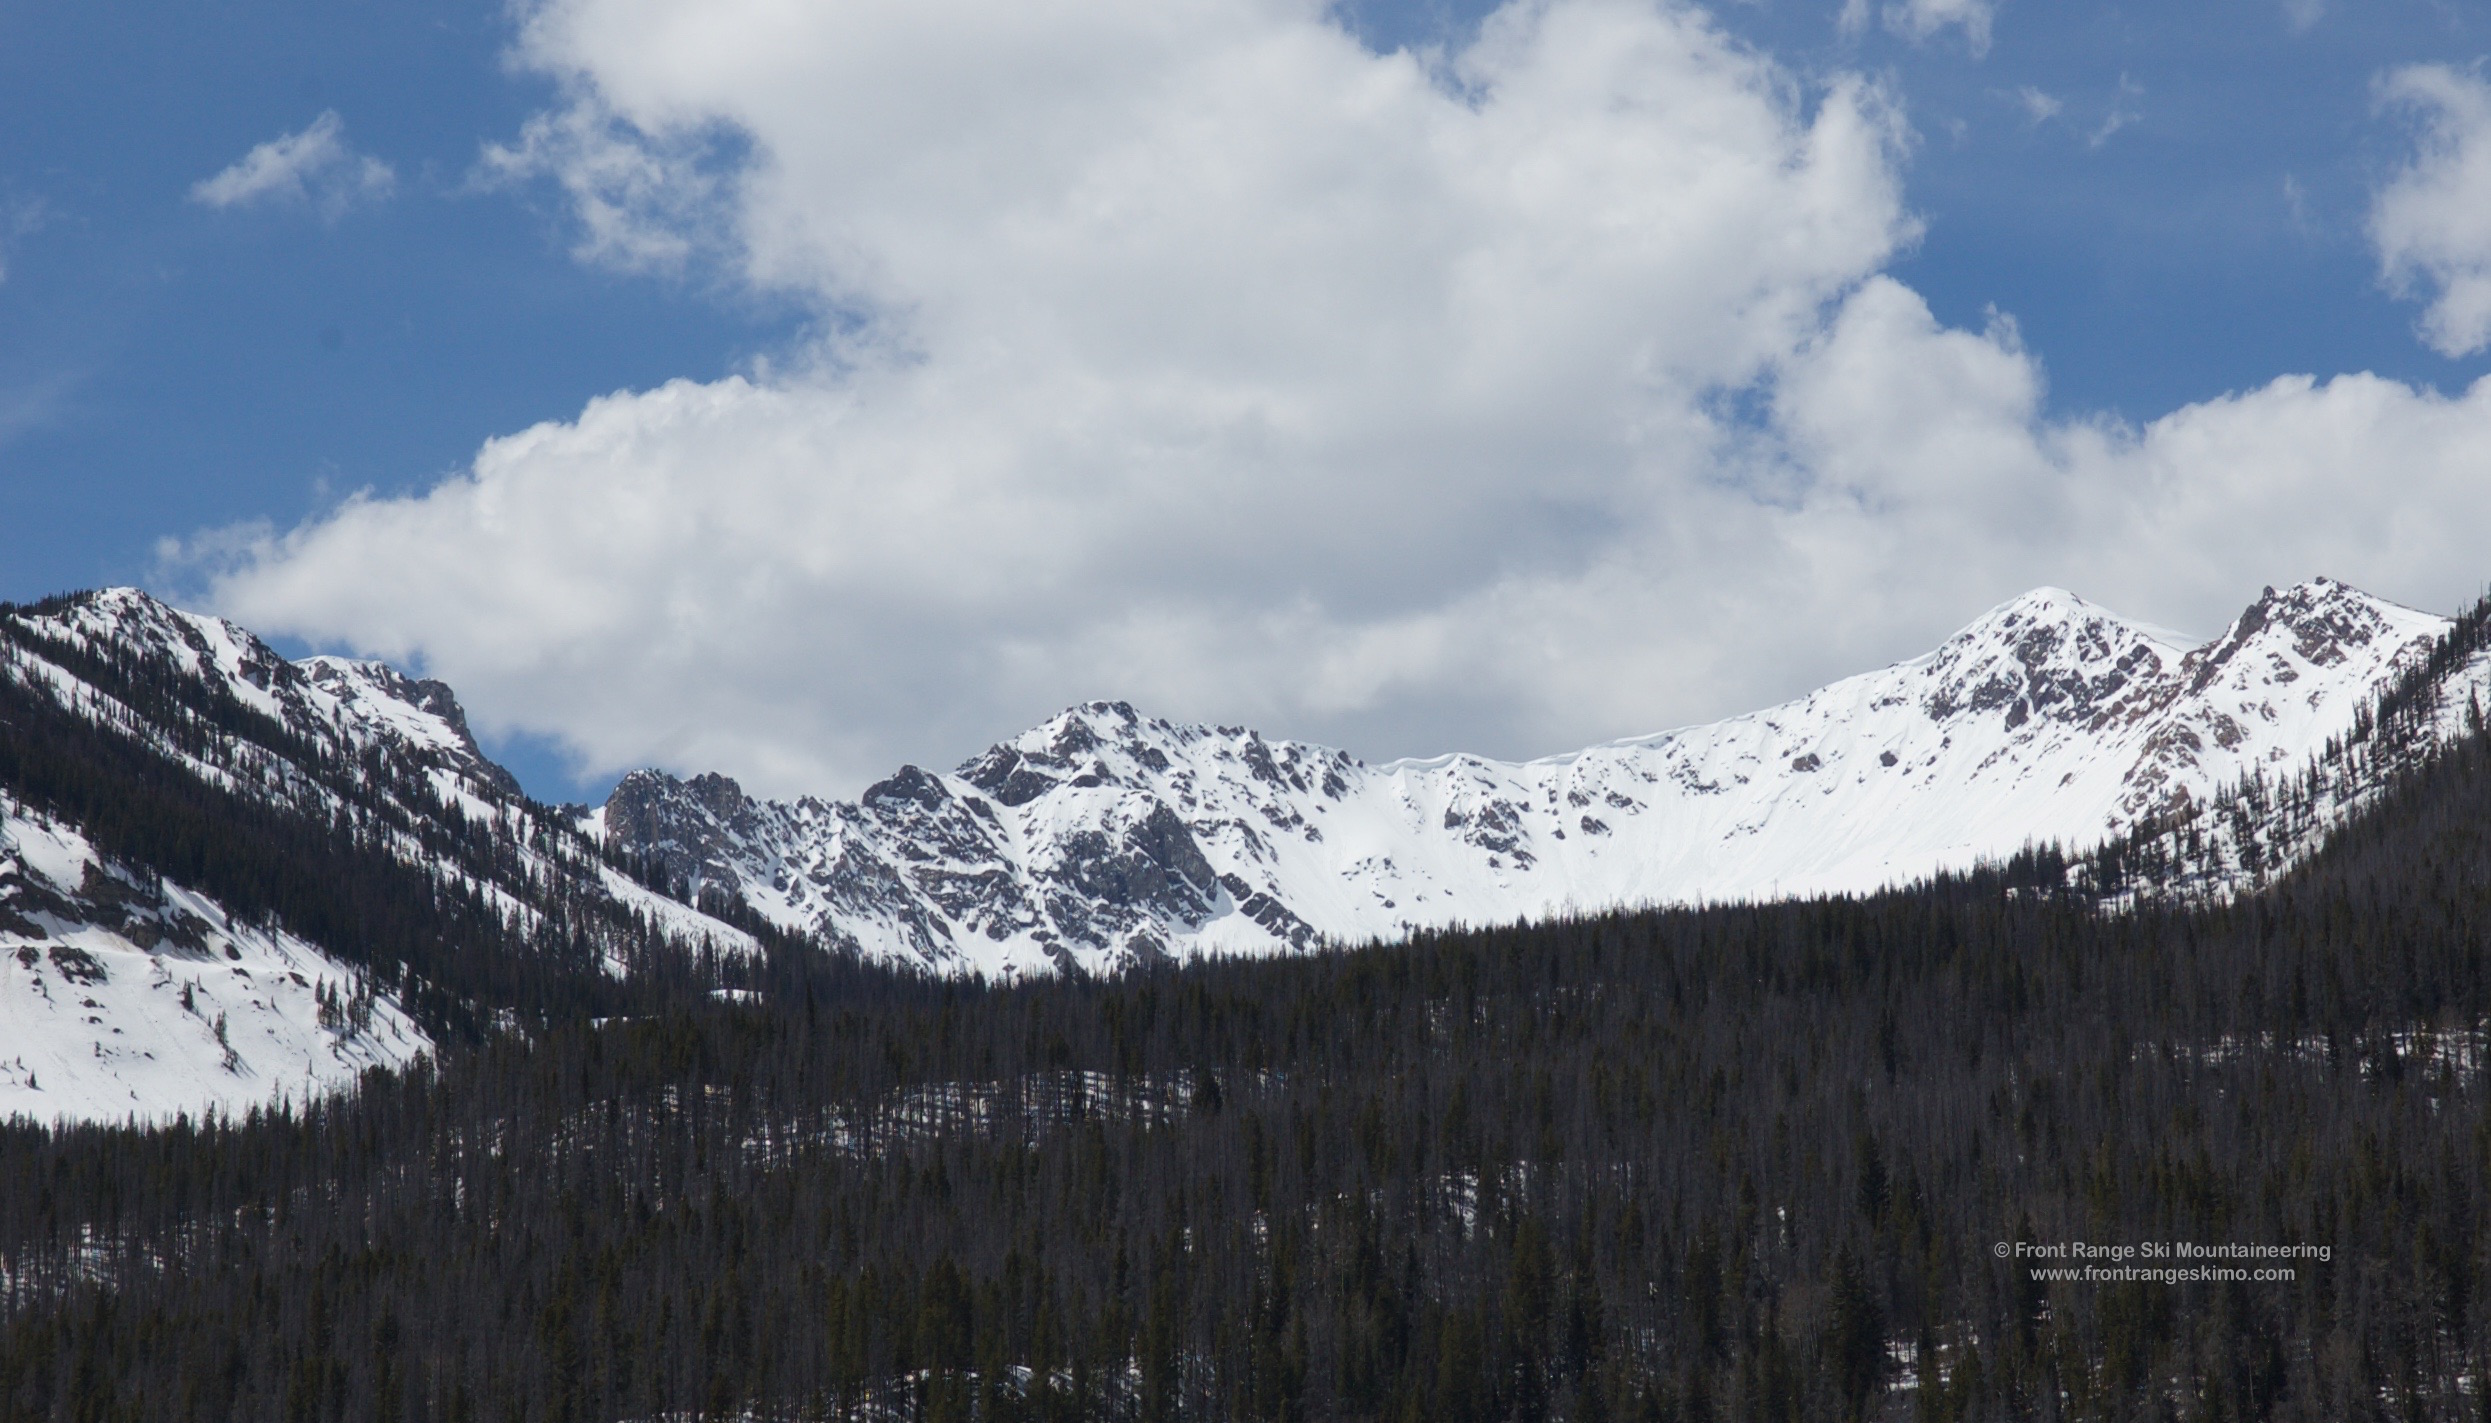 The south side of Mount Nimbus and North Side of Mount Stratus as seen from Trail Ridge Road north of Grand Lake.